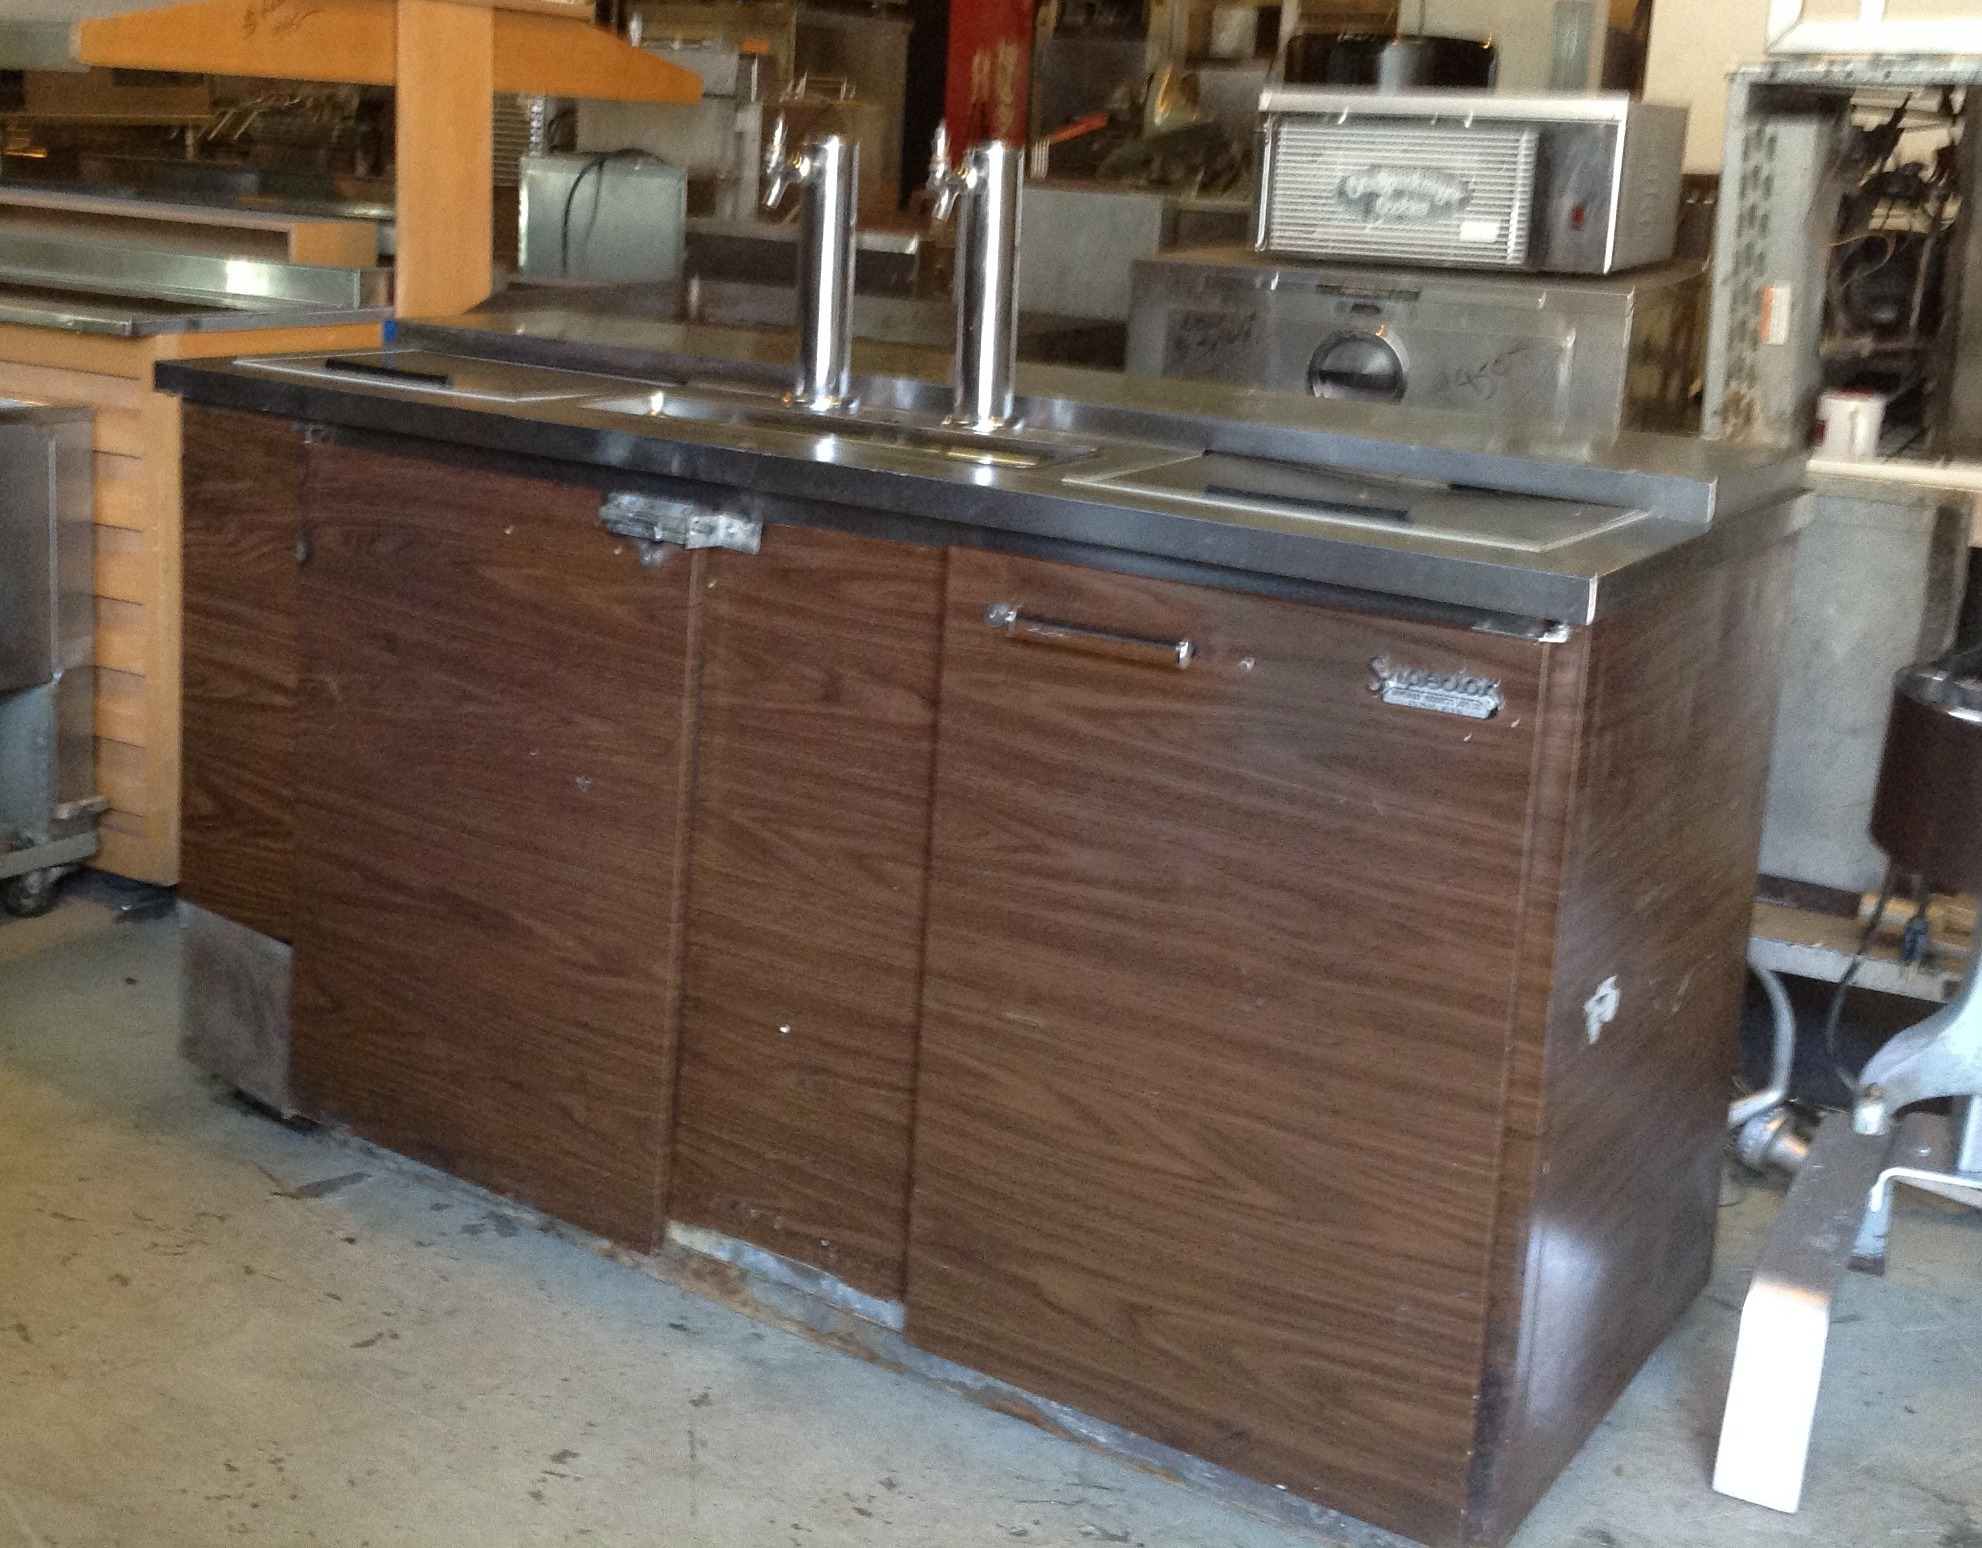 Superior Kegerator w/Wood Grain